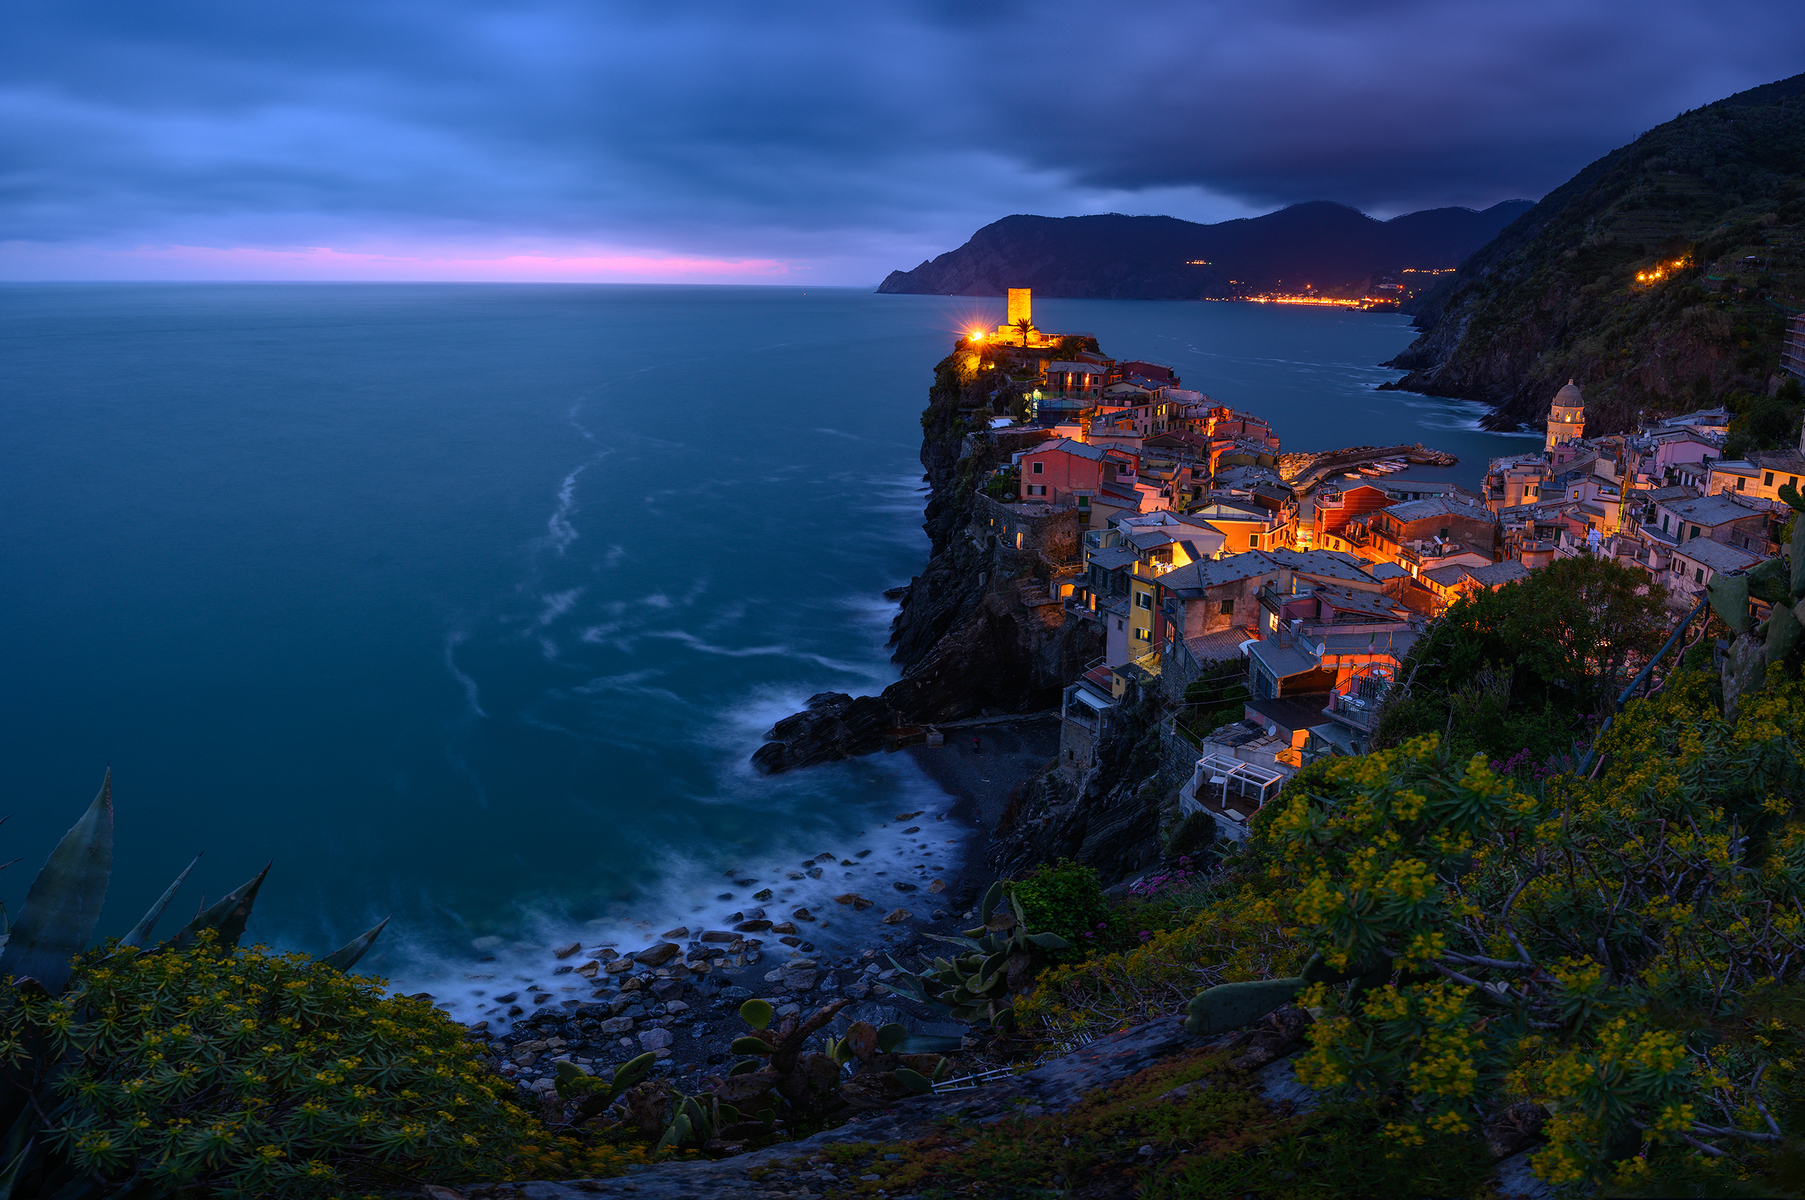 Blue hour in northwest Italy